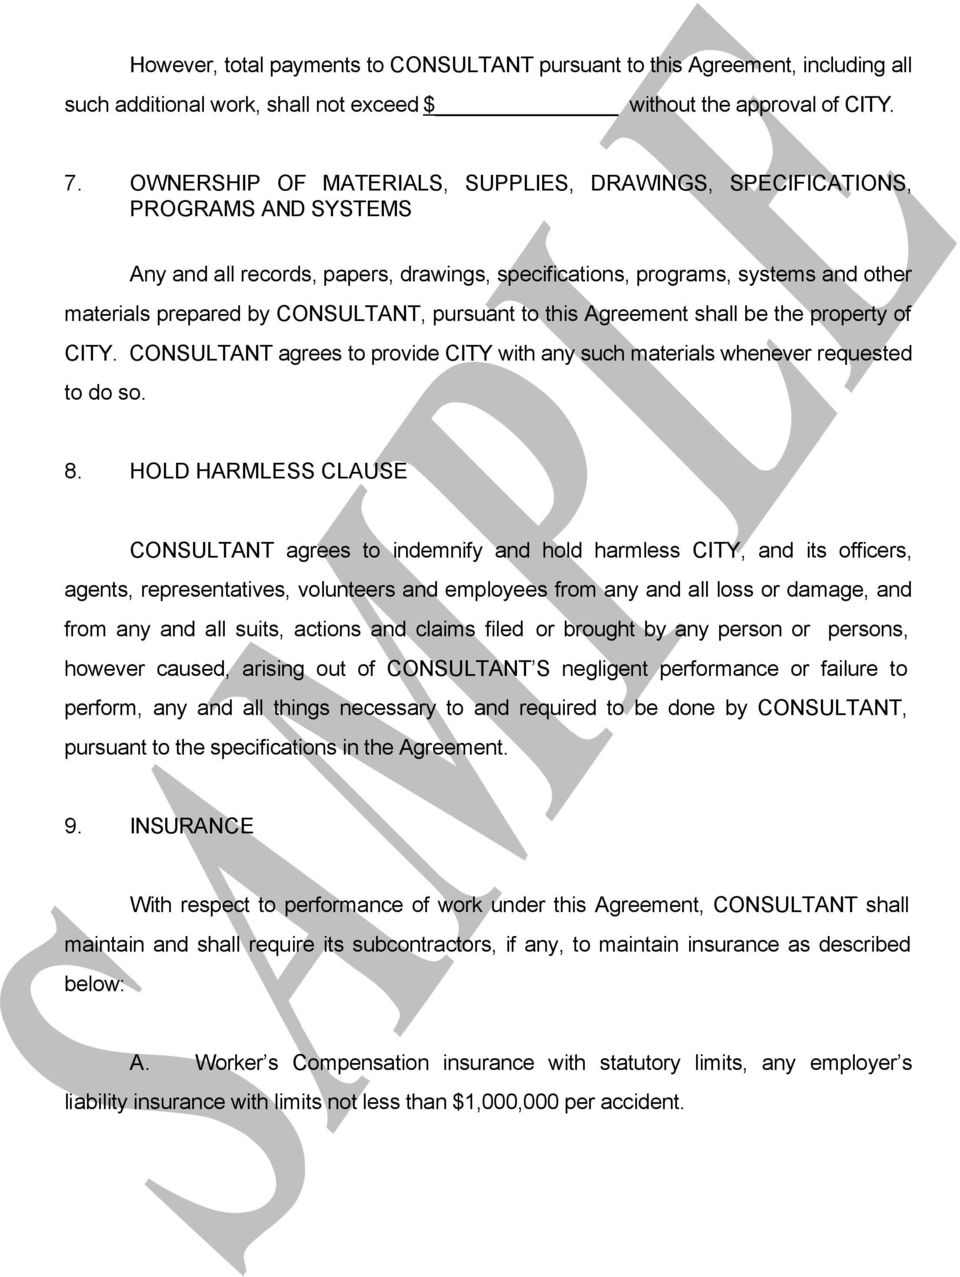 pursuant to this Agreement shall be the property of CITY. CONSULTANT agrees to provide CITY with any such materials whenever requested to do so. 8.